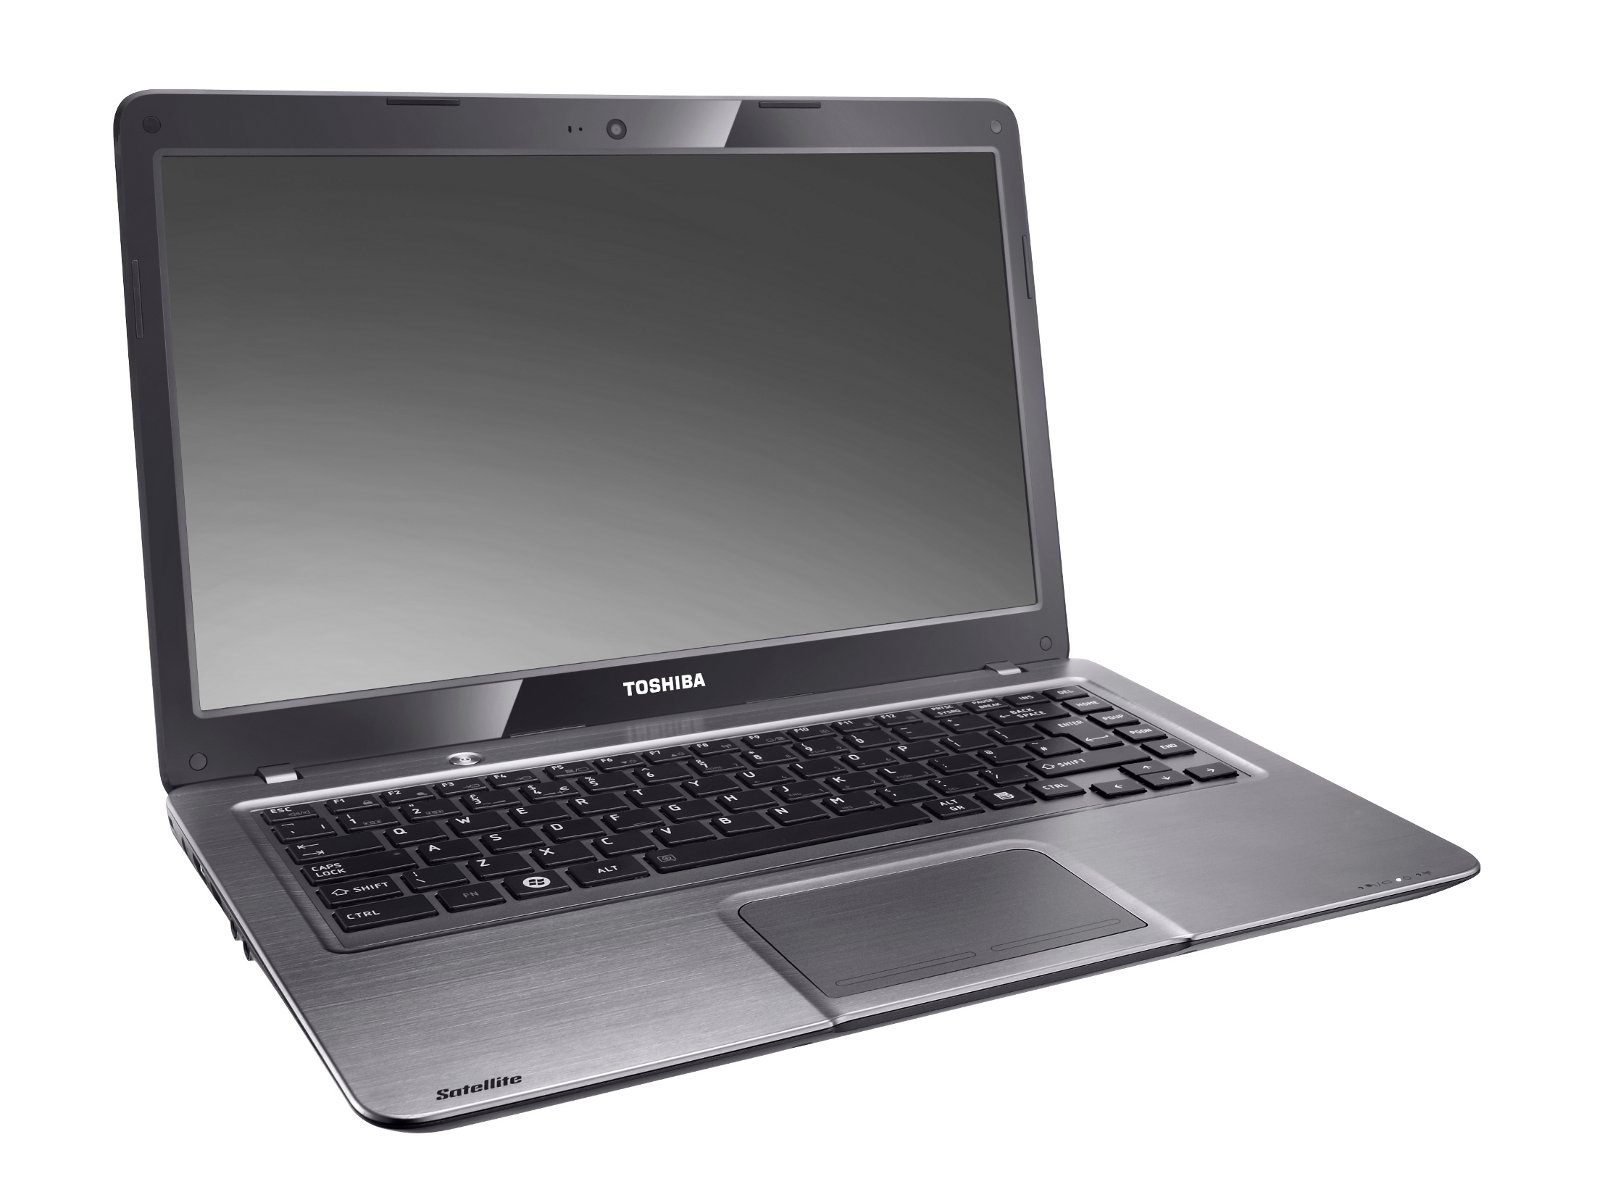 Toshiba Intros Its First 14